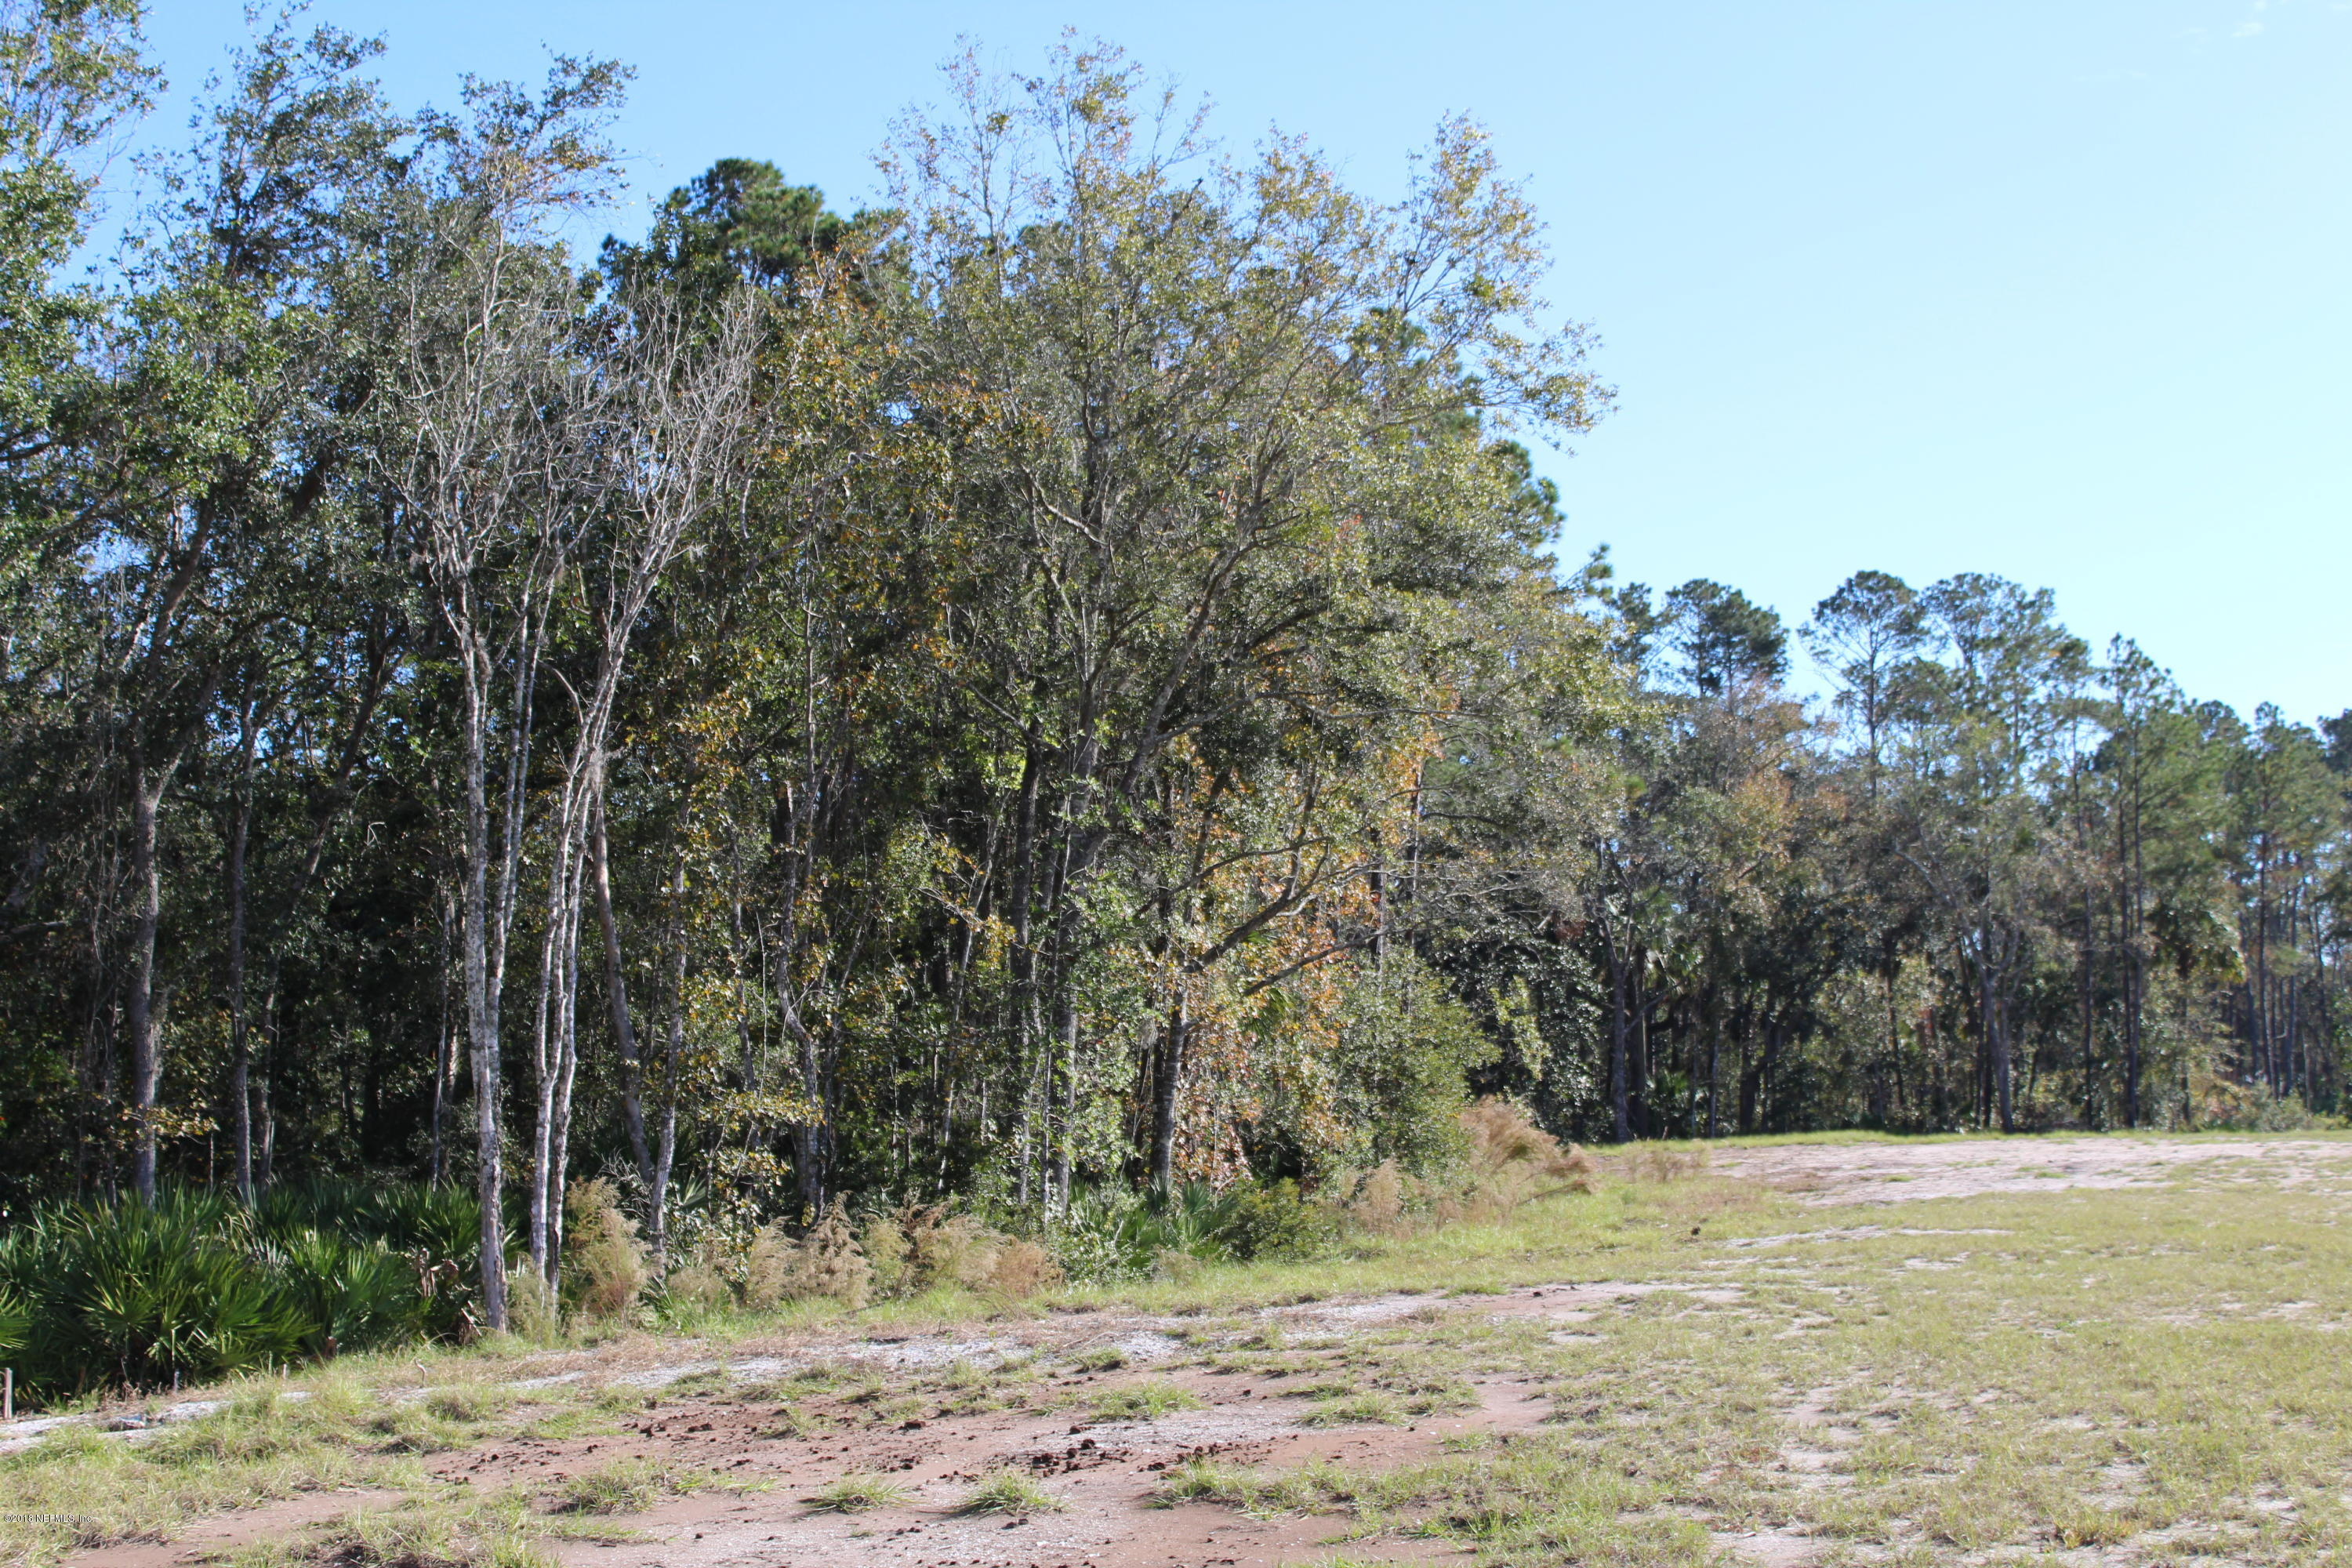 391 WILDERNESS RIDGE, PONTE VEDRA, FLORIDA 32081, ,Vacant land,For sale,WILDERNESS RIDGE,921072